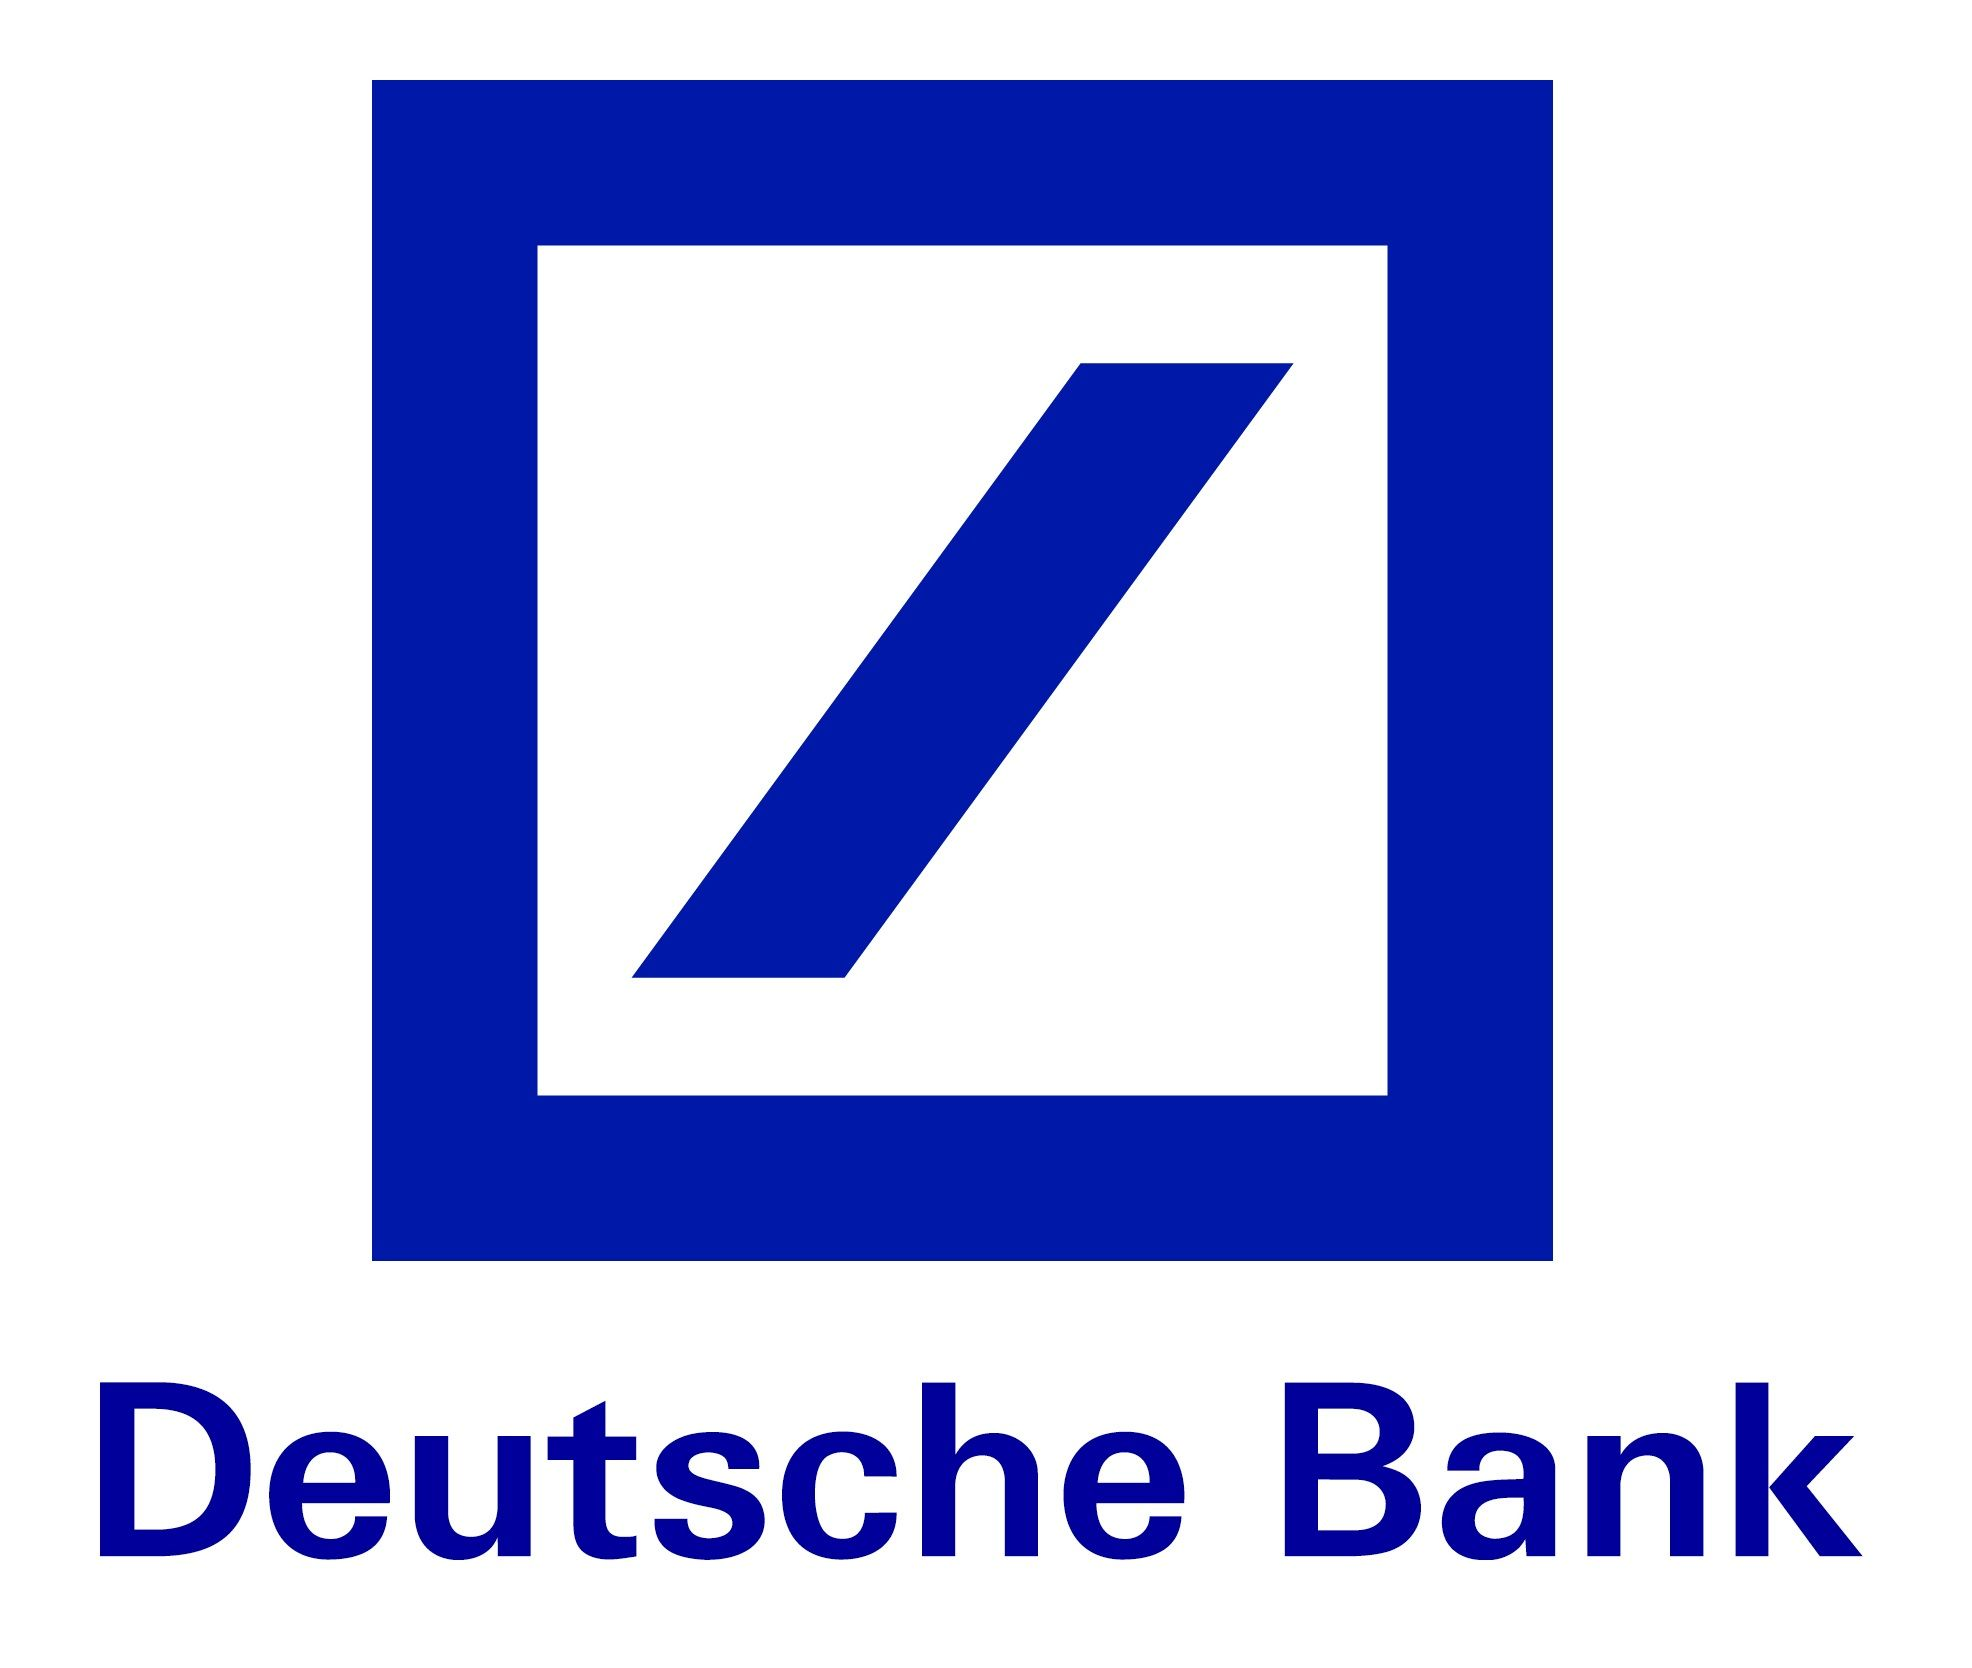 deutschebank. On Friday they announced they had a 98